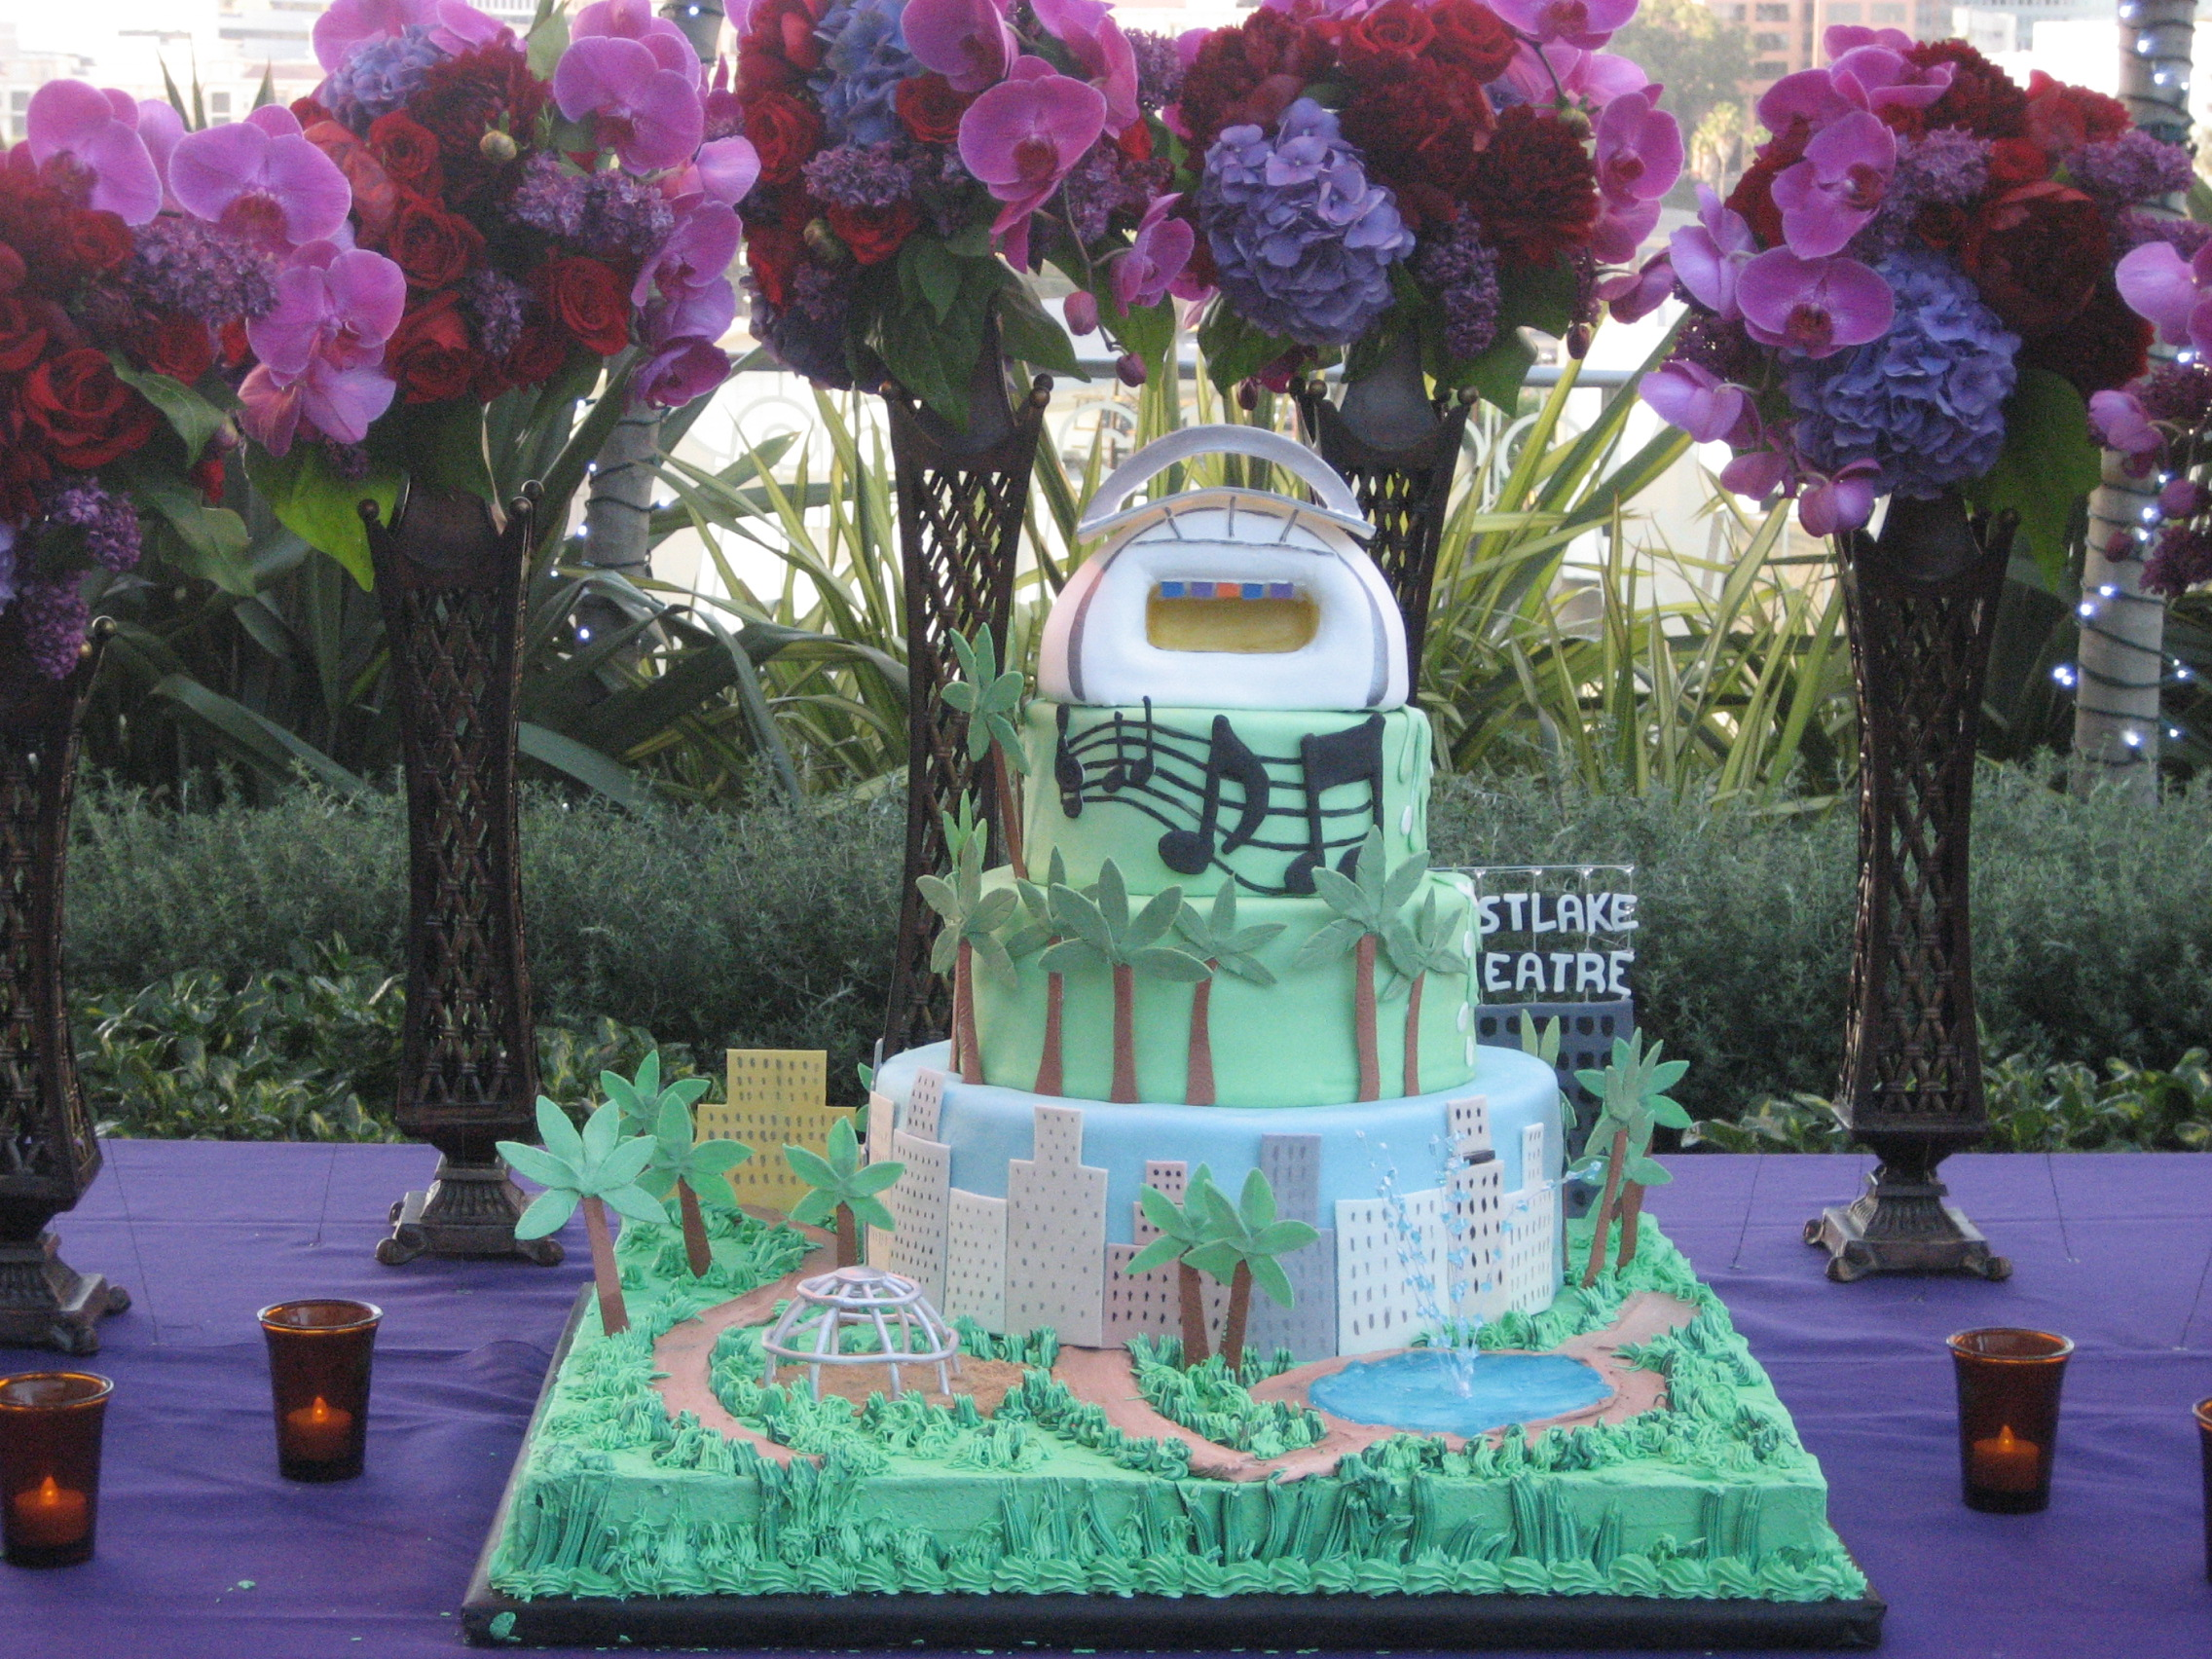 Macarthur Park Cake Out In The Rain